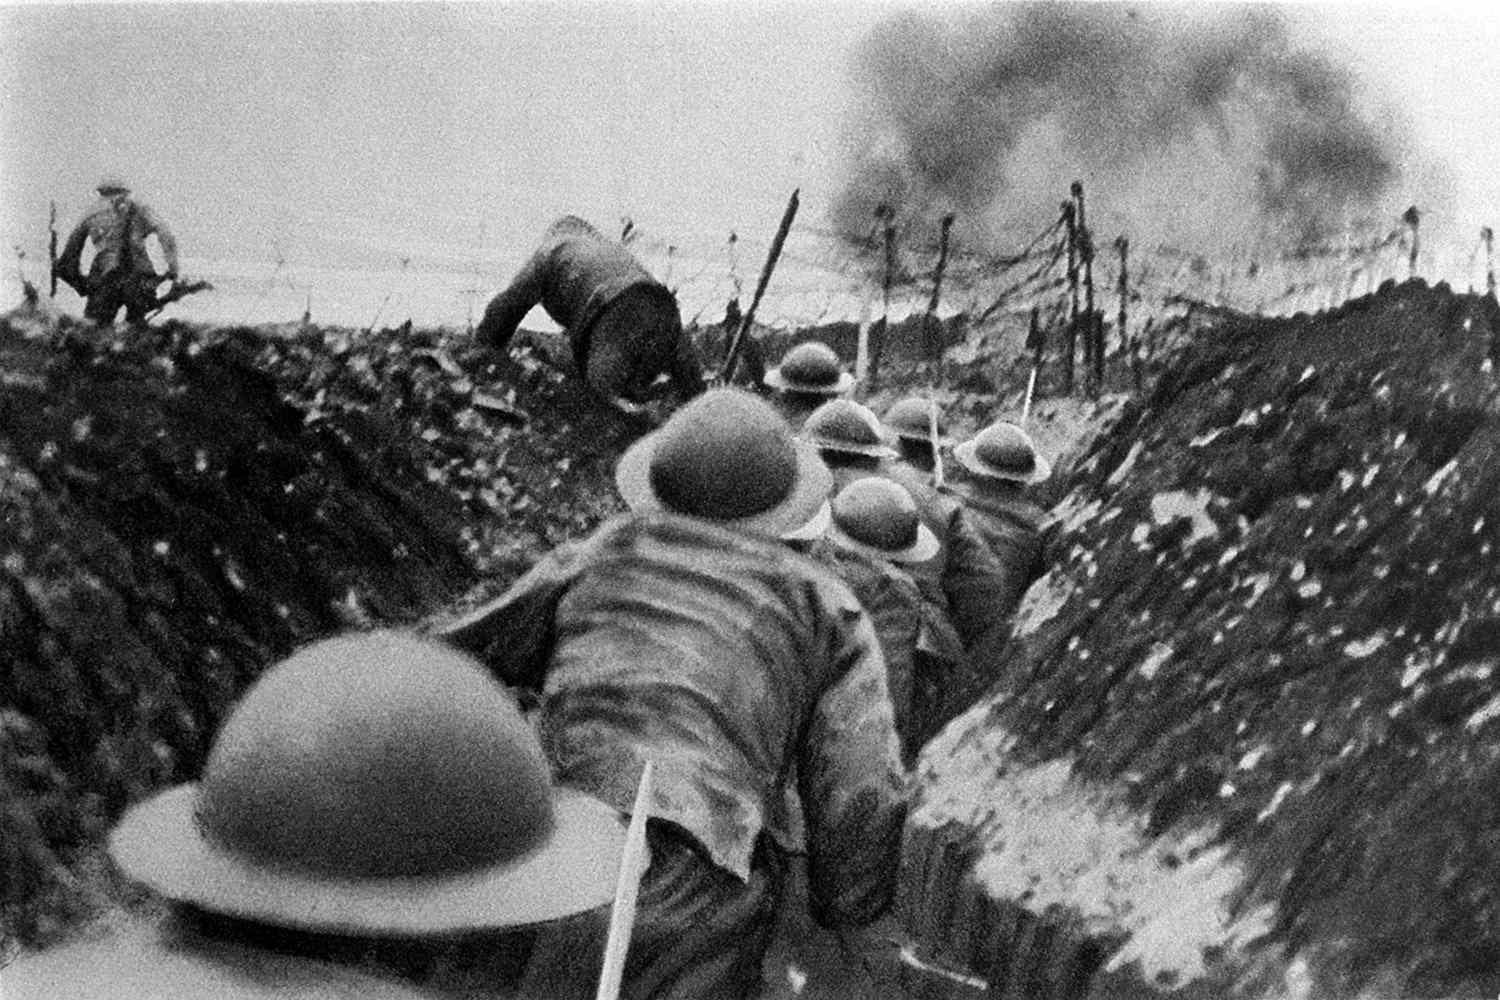 British troops in the trench warfare of World War I.